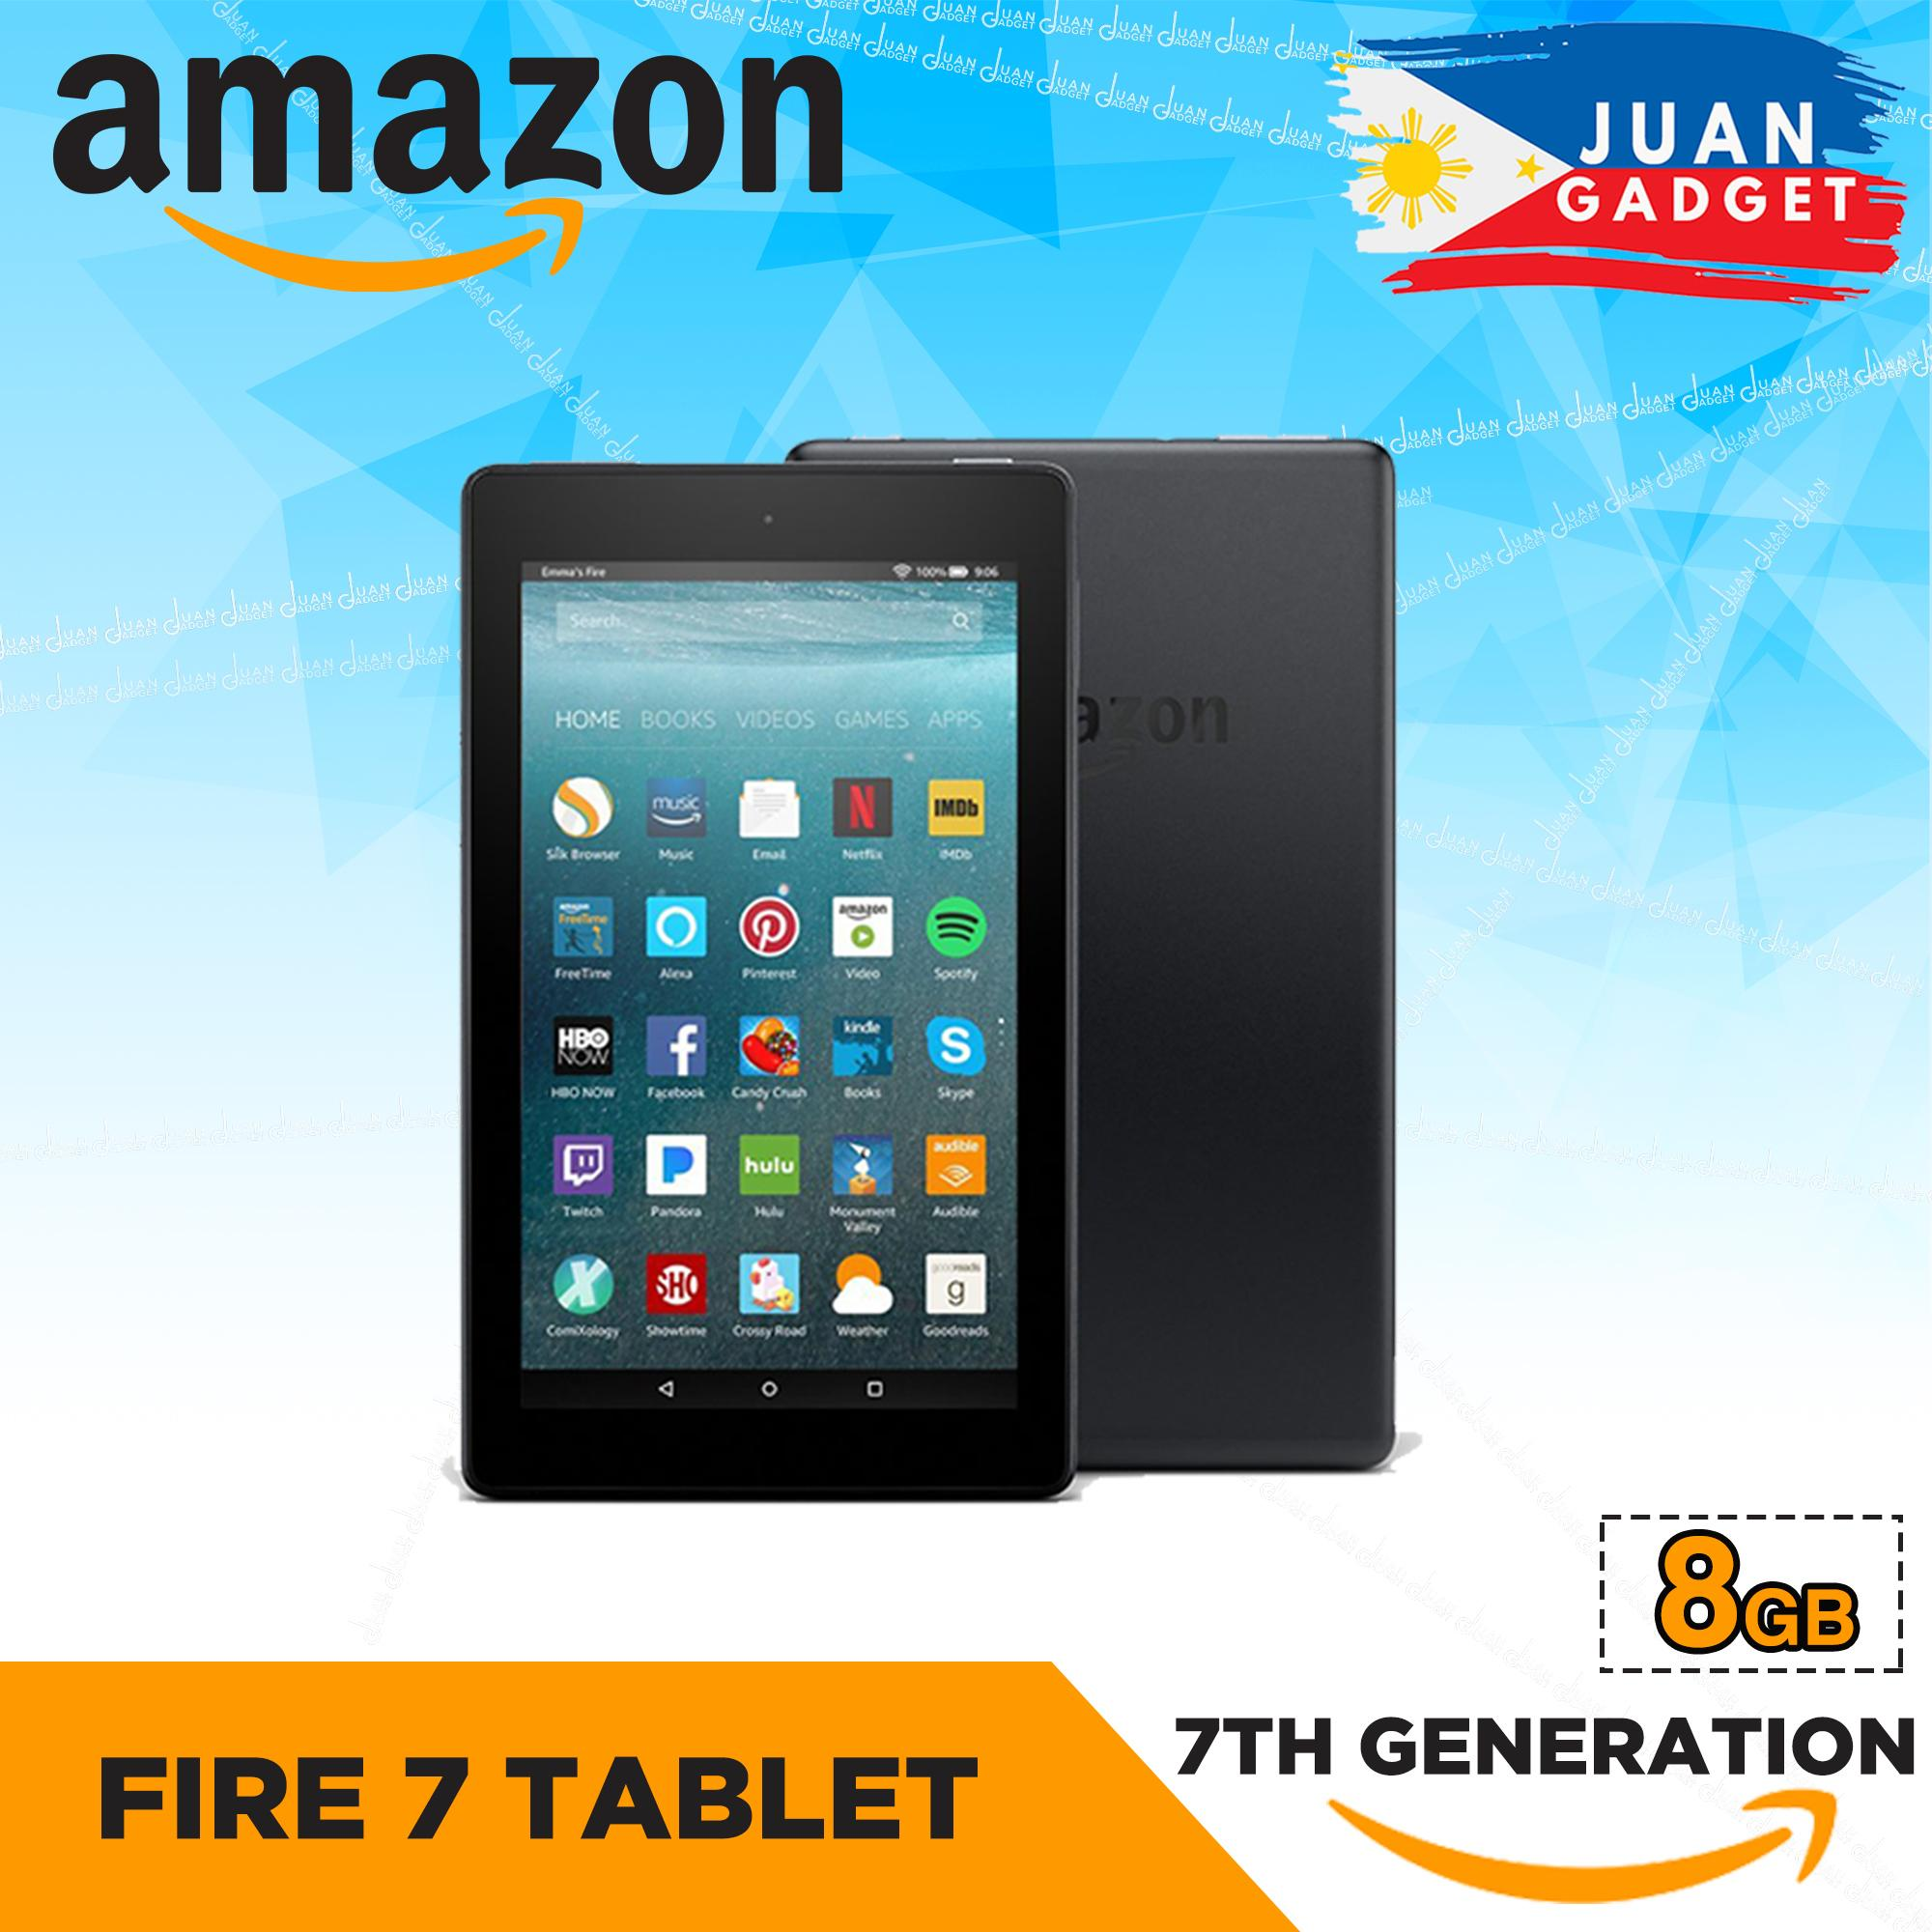 Amazon Fire 7 Tablet With Alexa, 7 Inch Display, 7th Generation By Juan Gadget.